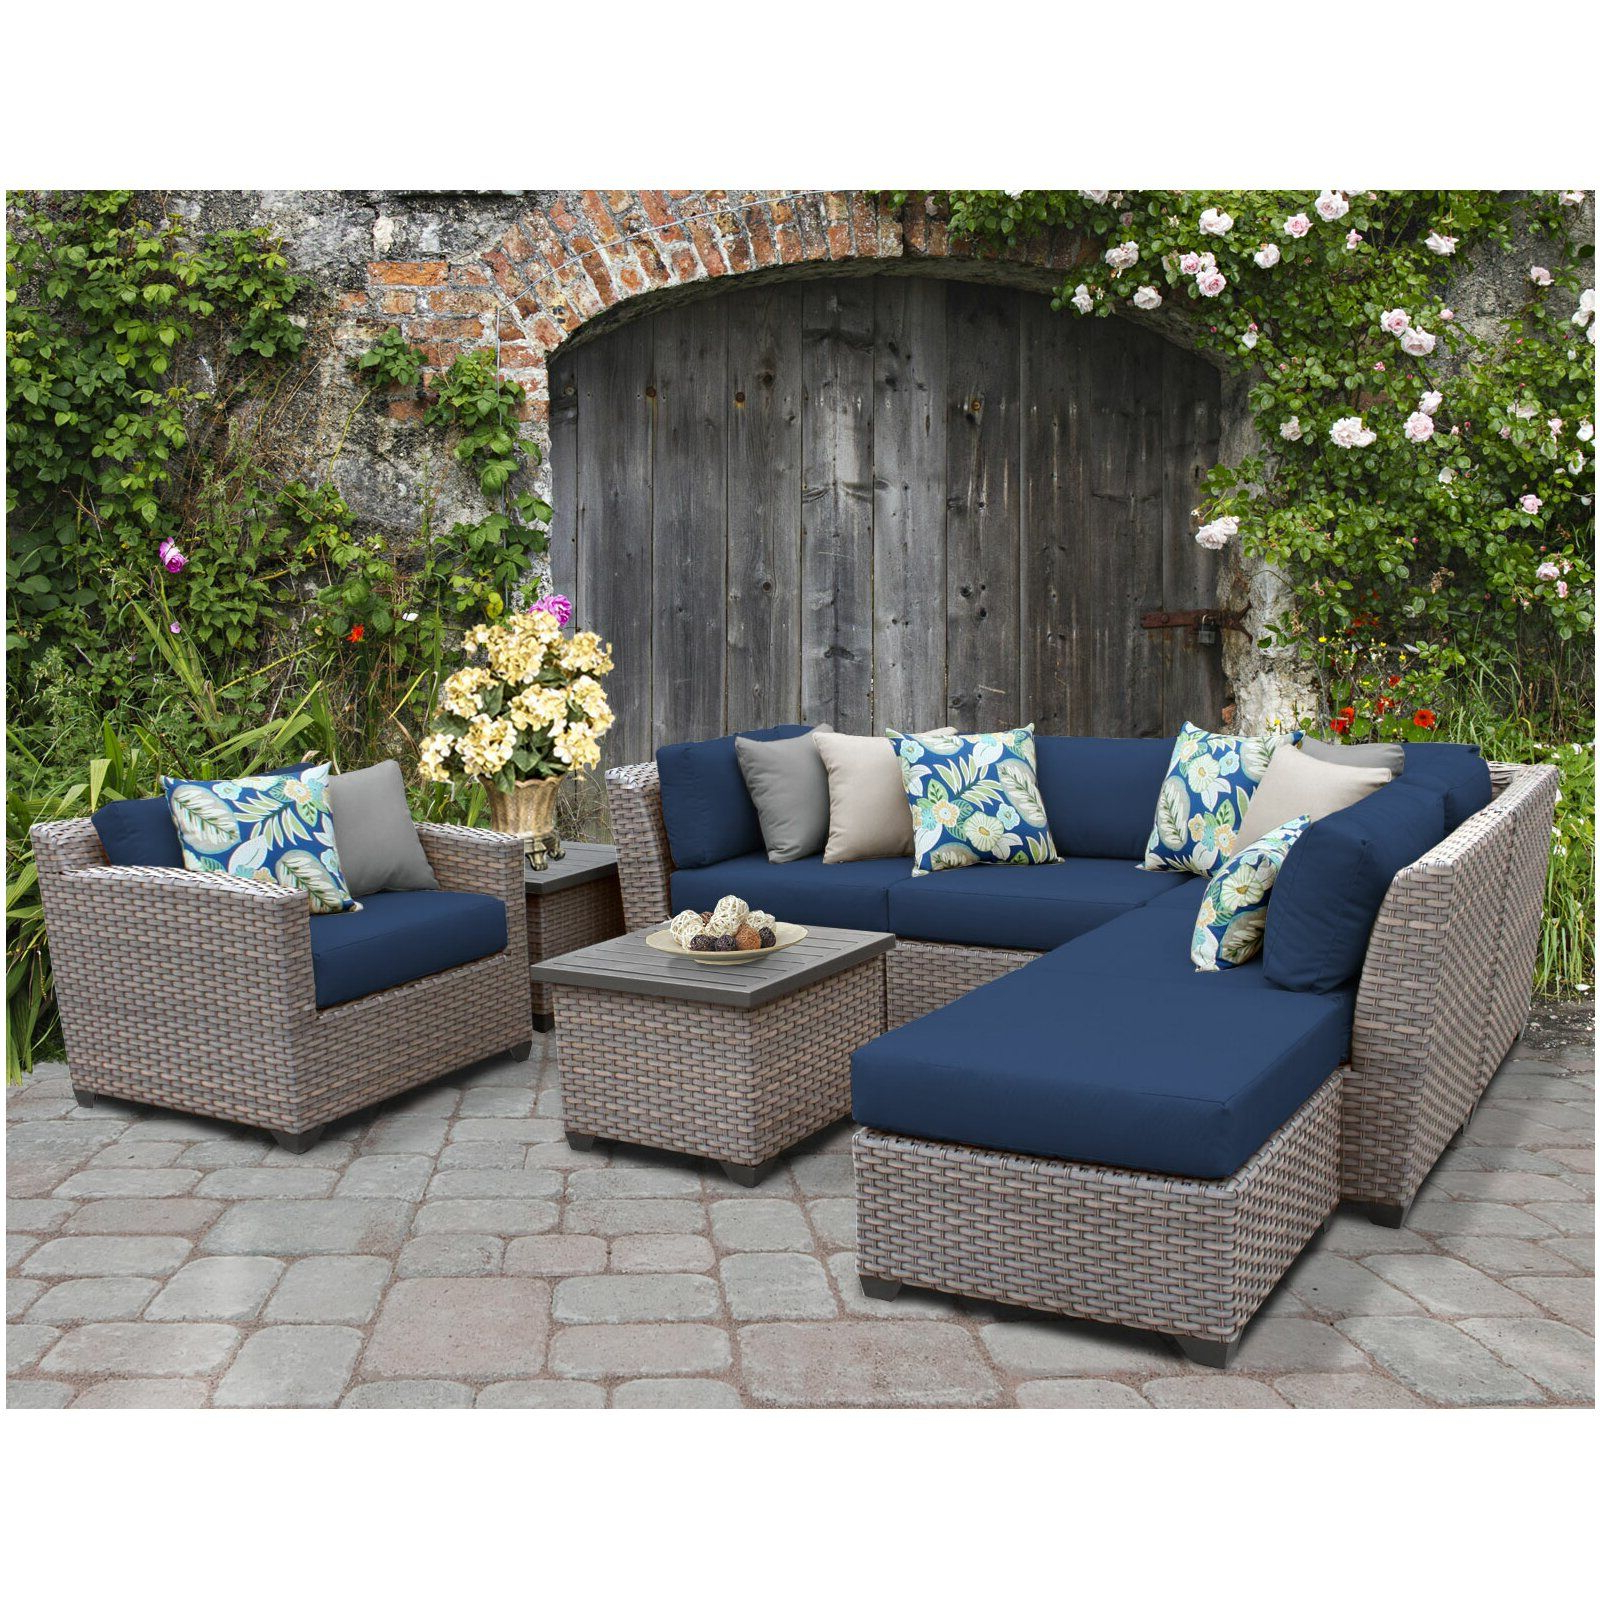 Recent Meeks 8 Piece Sectional Seating Group With Cushions In 2019 With Meeks Patio Sofas With Cushions (View 18 of 20)